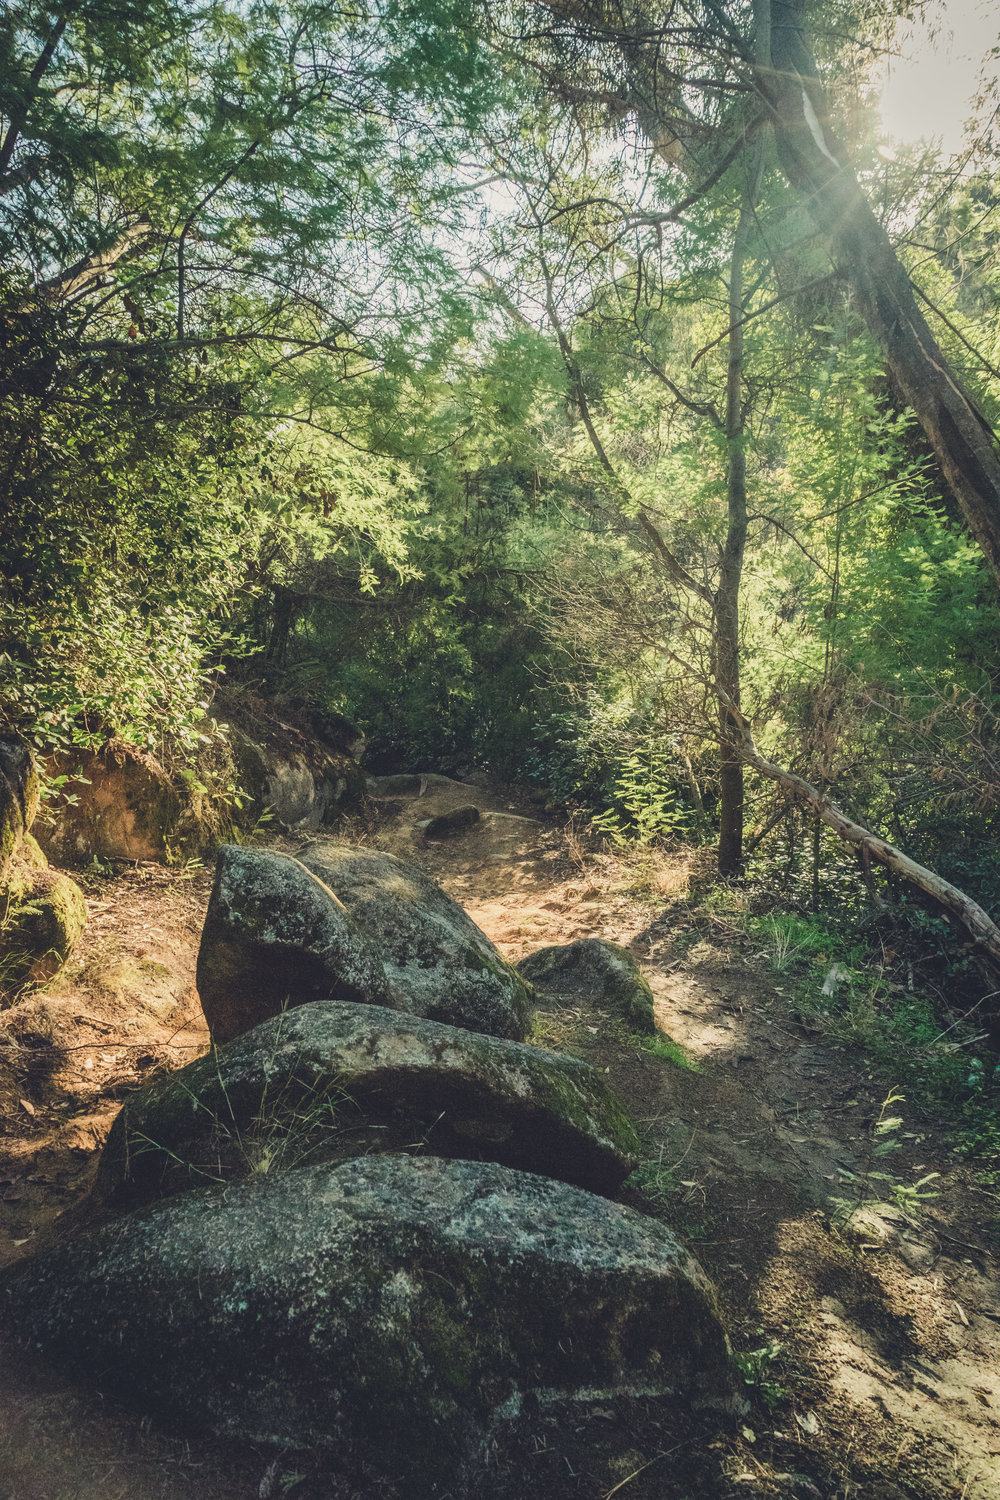 caldas de monchique portugal. walking through the forest. walking through the grounds of the spa. lovely setting. rocks on the path.jpg